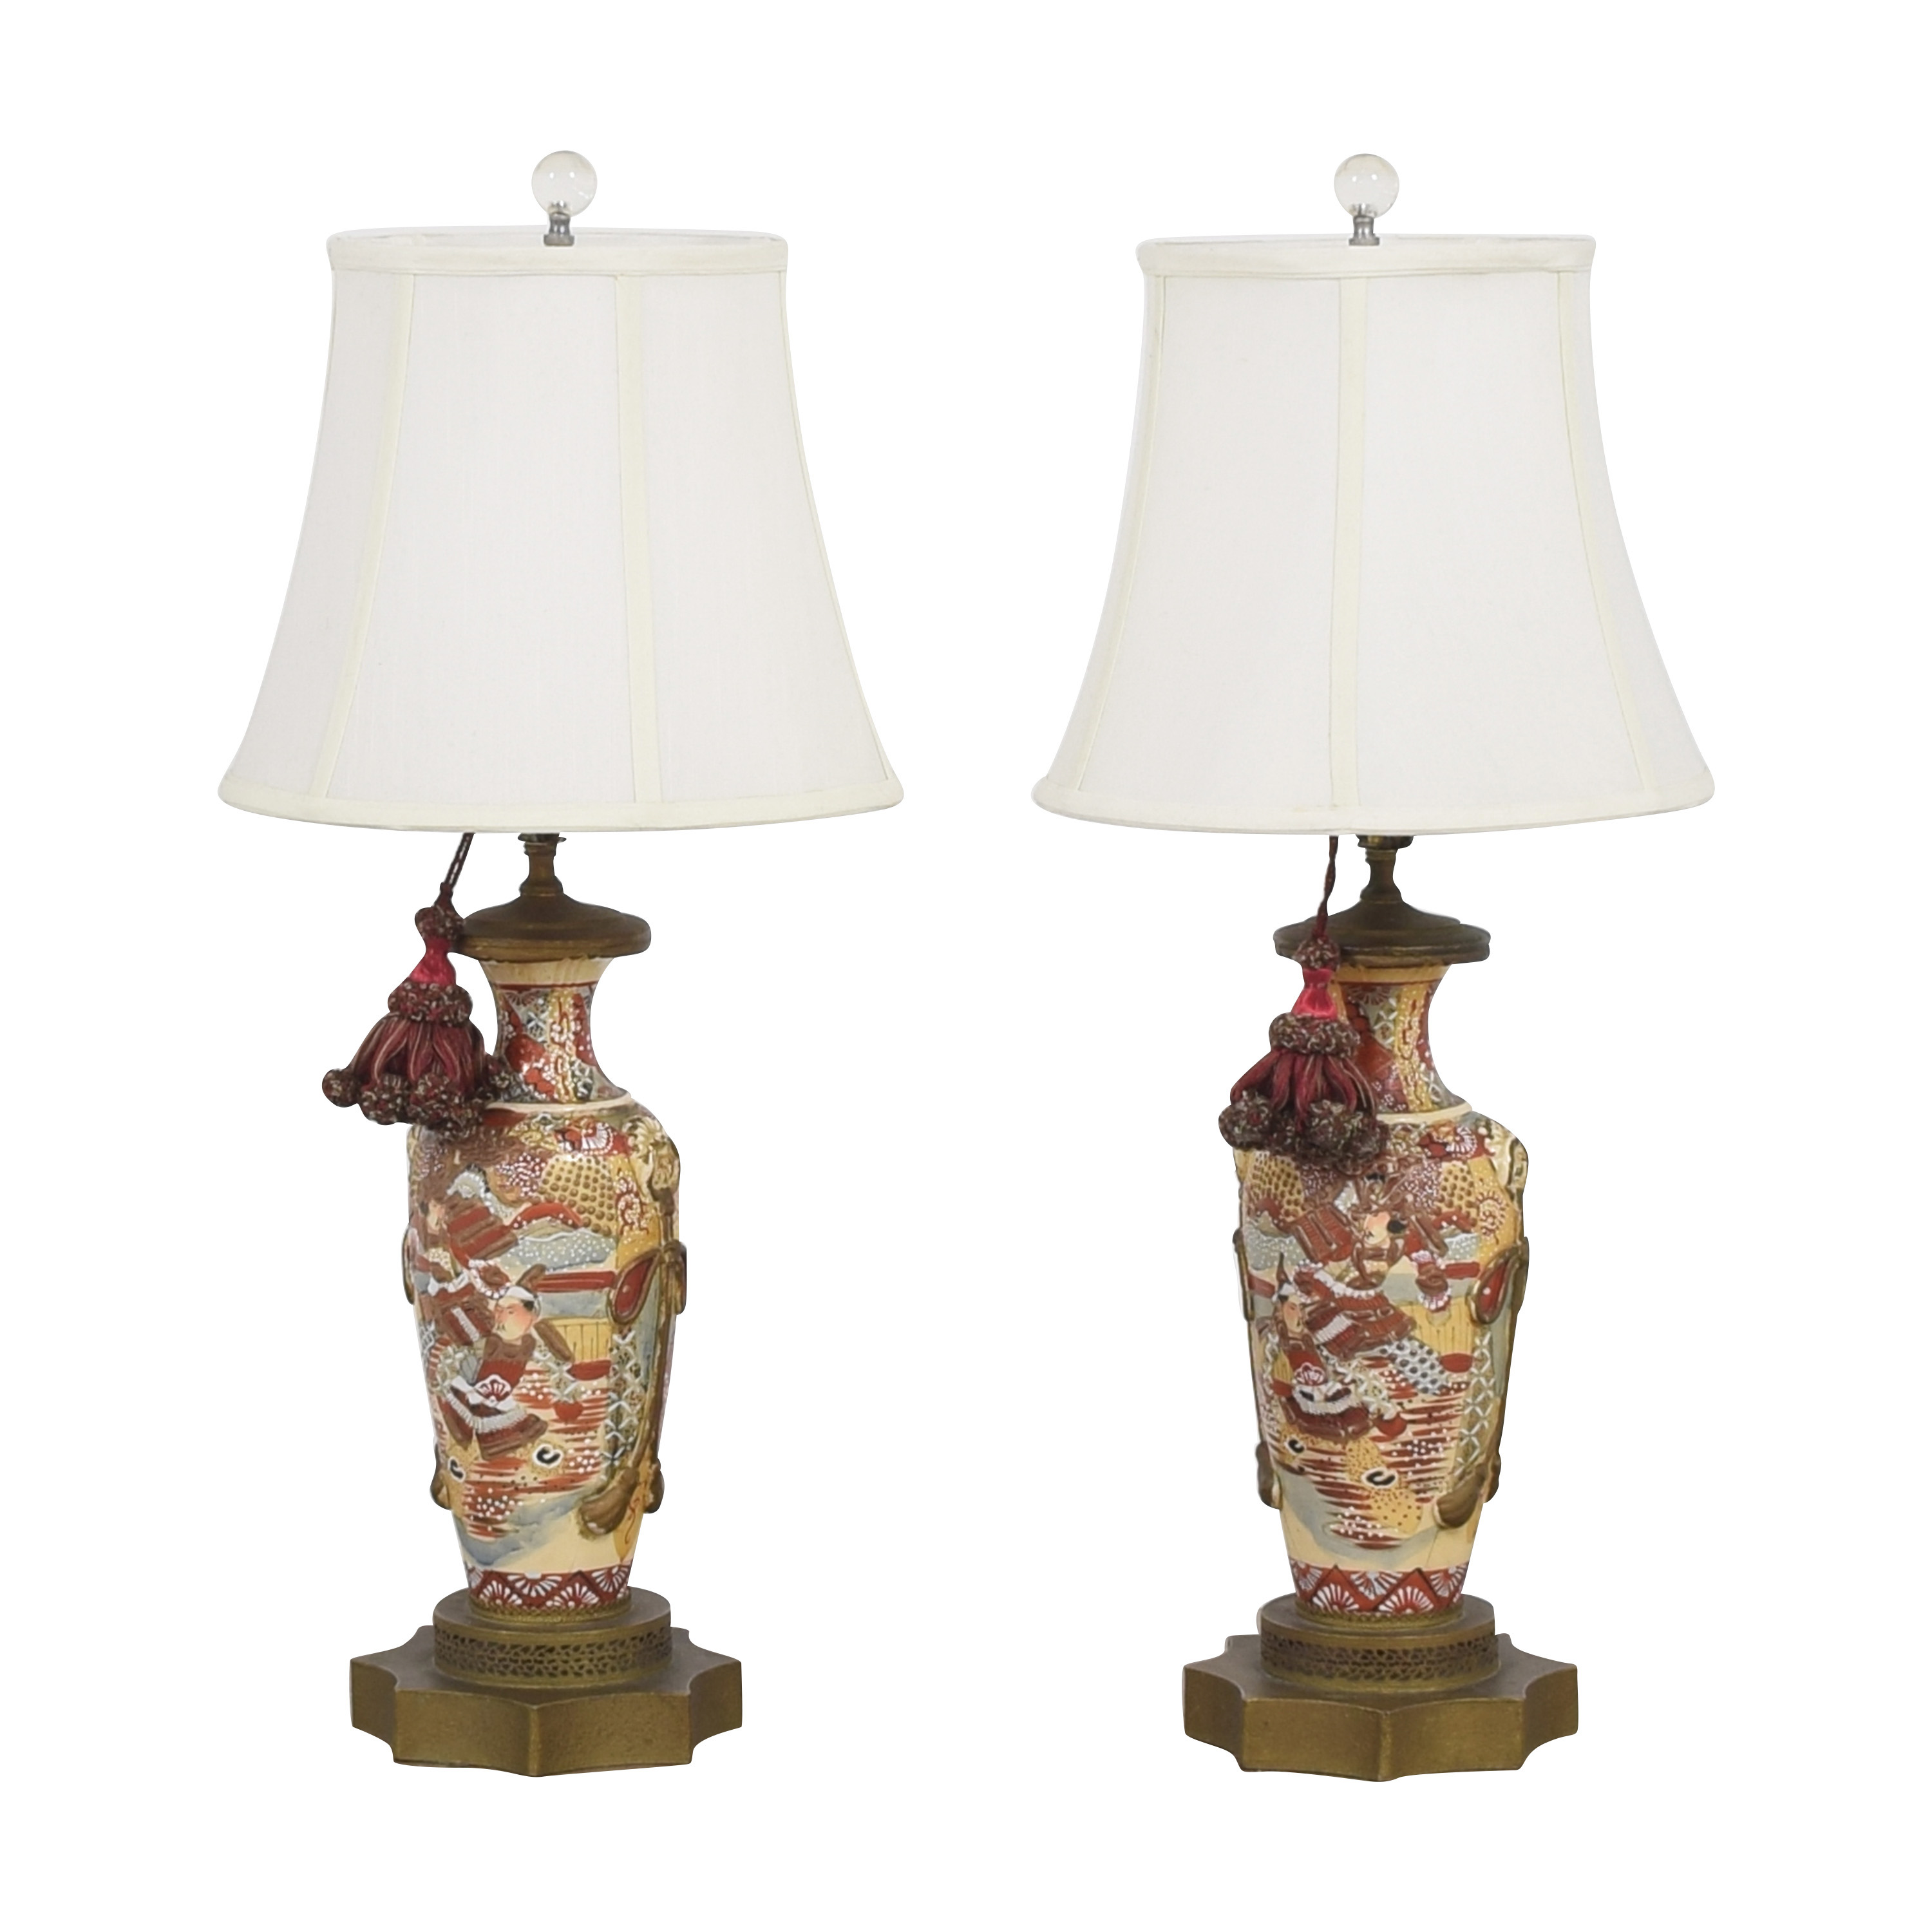 buy  Japanese Satsuma Vase Table Lamps online